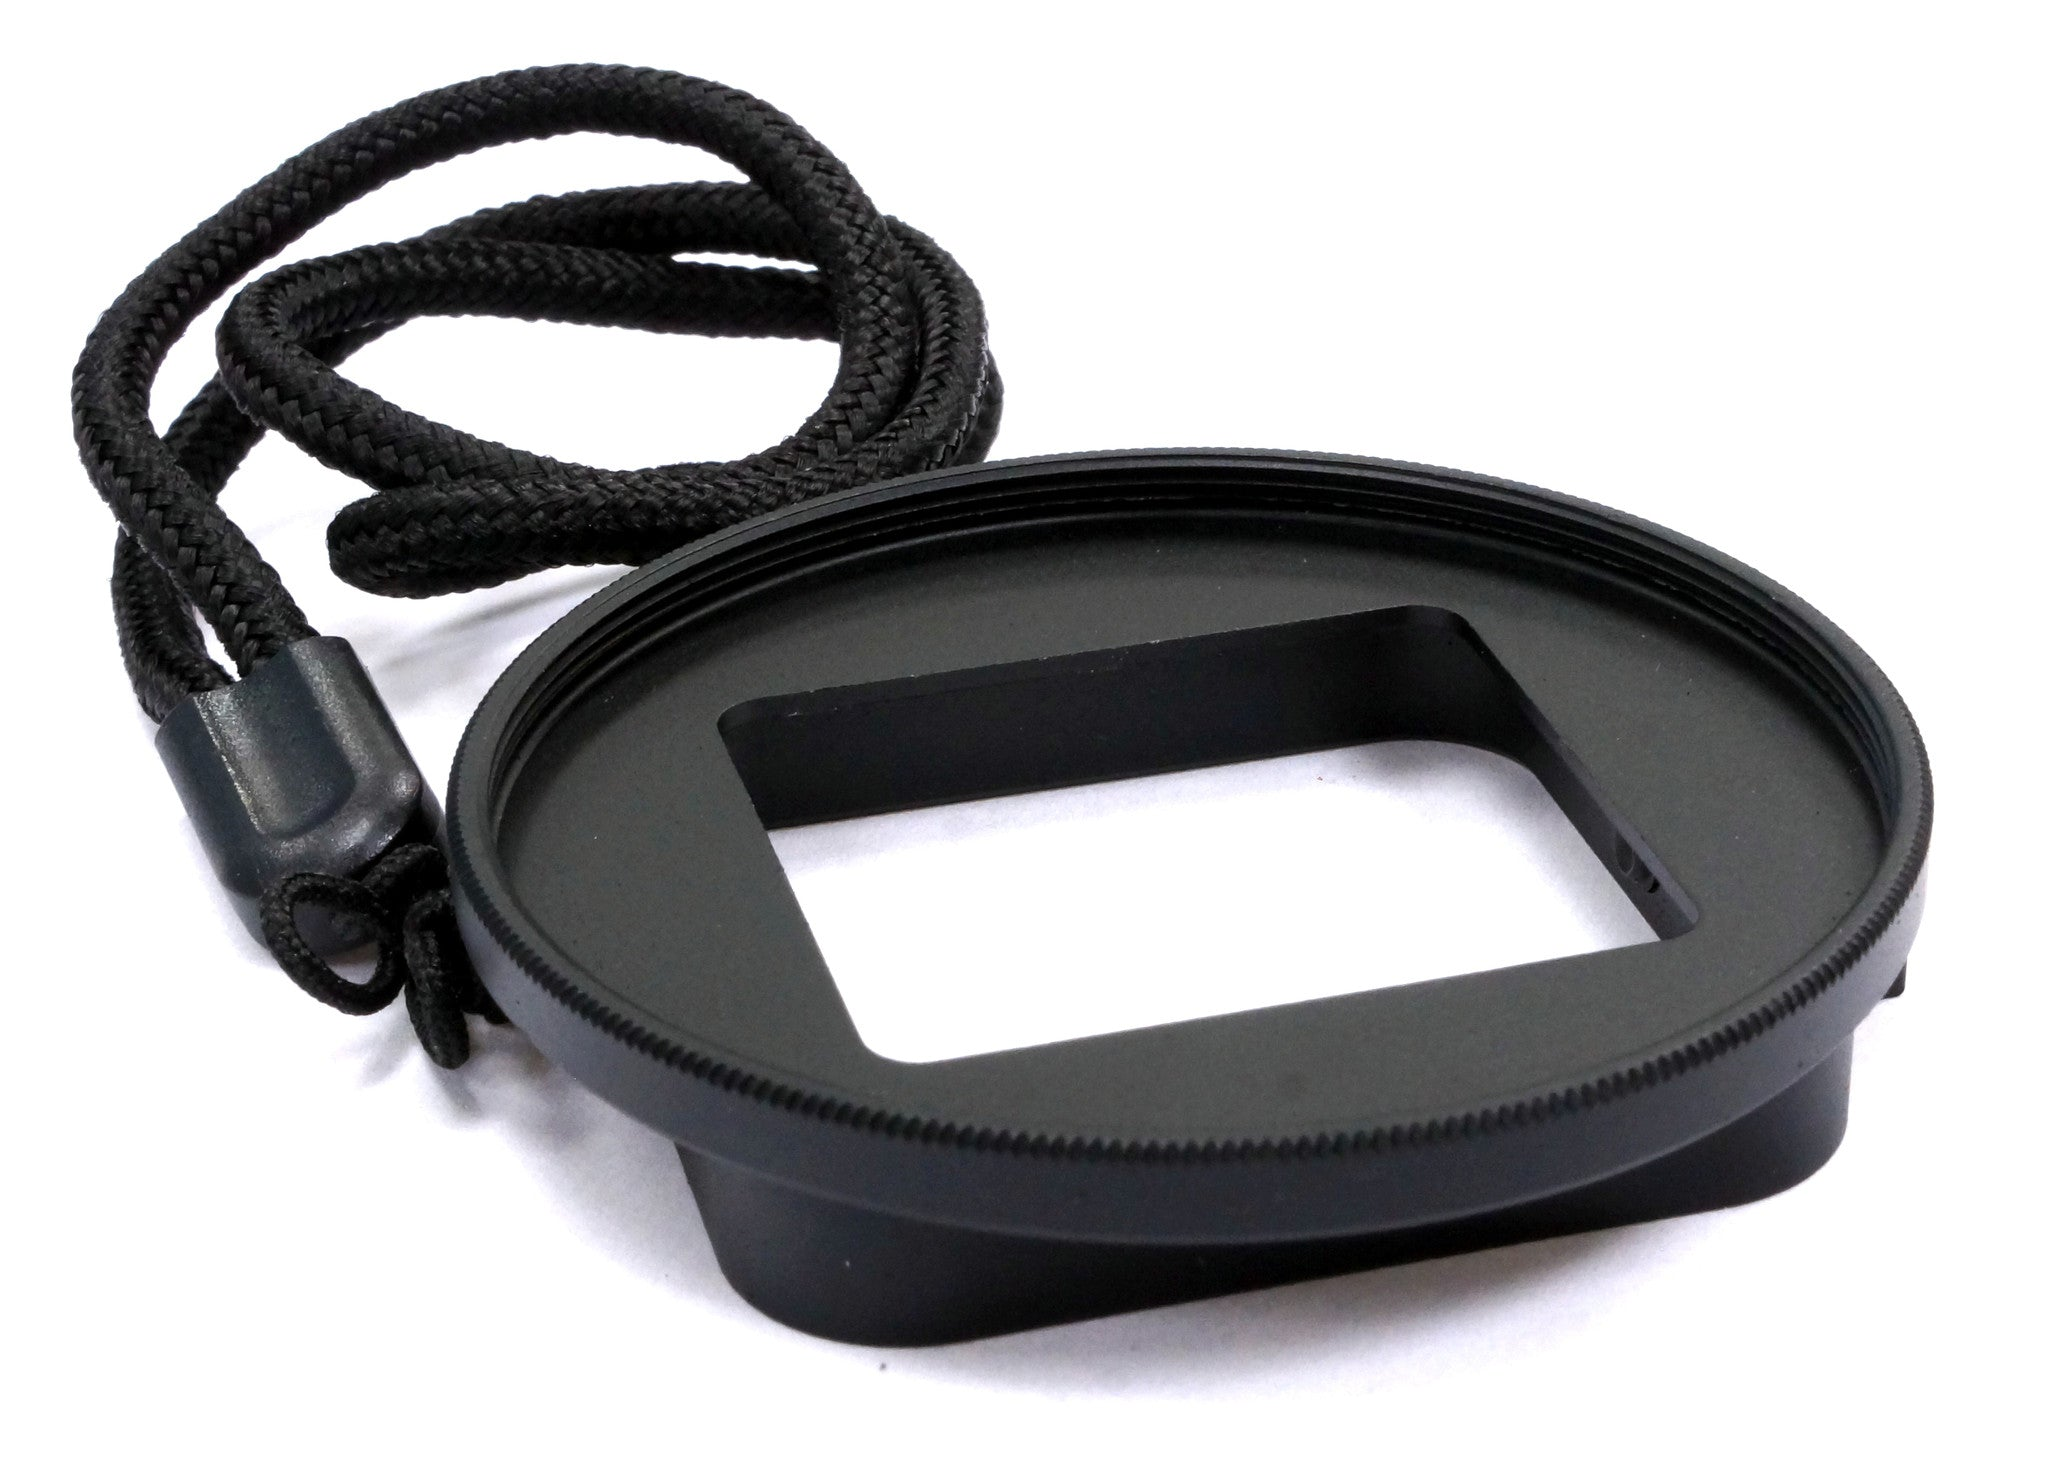 52mm Filter Adapter Ring - Waterproof Housing